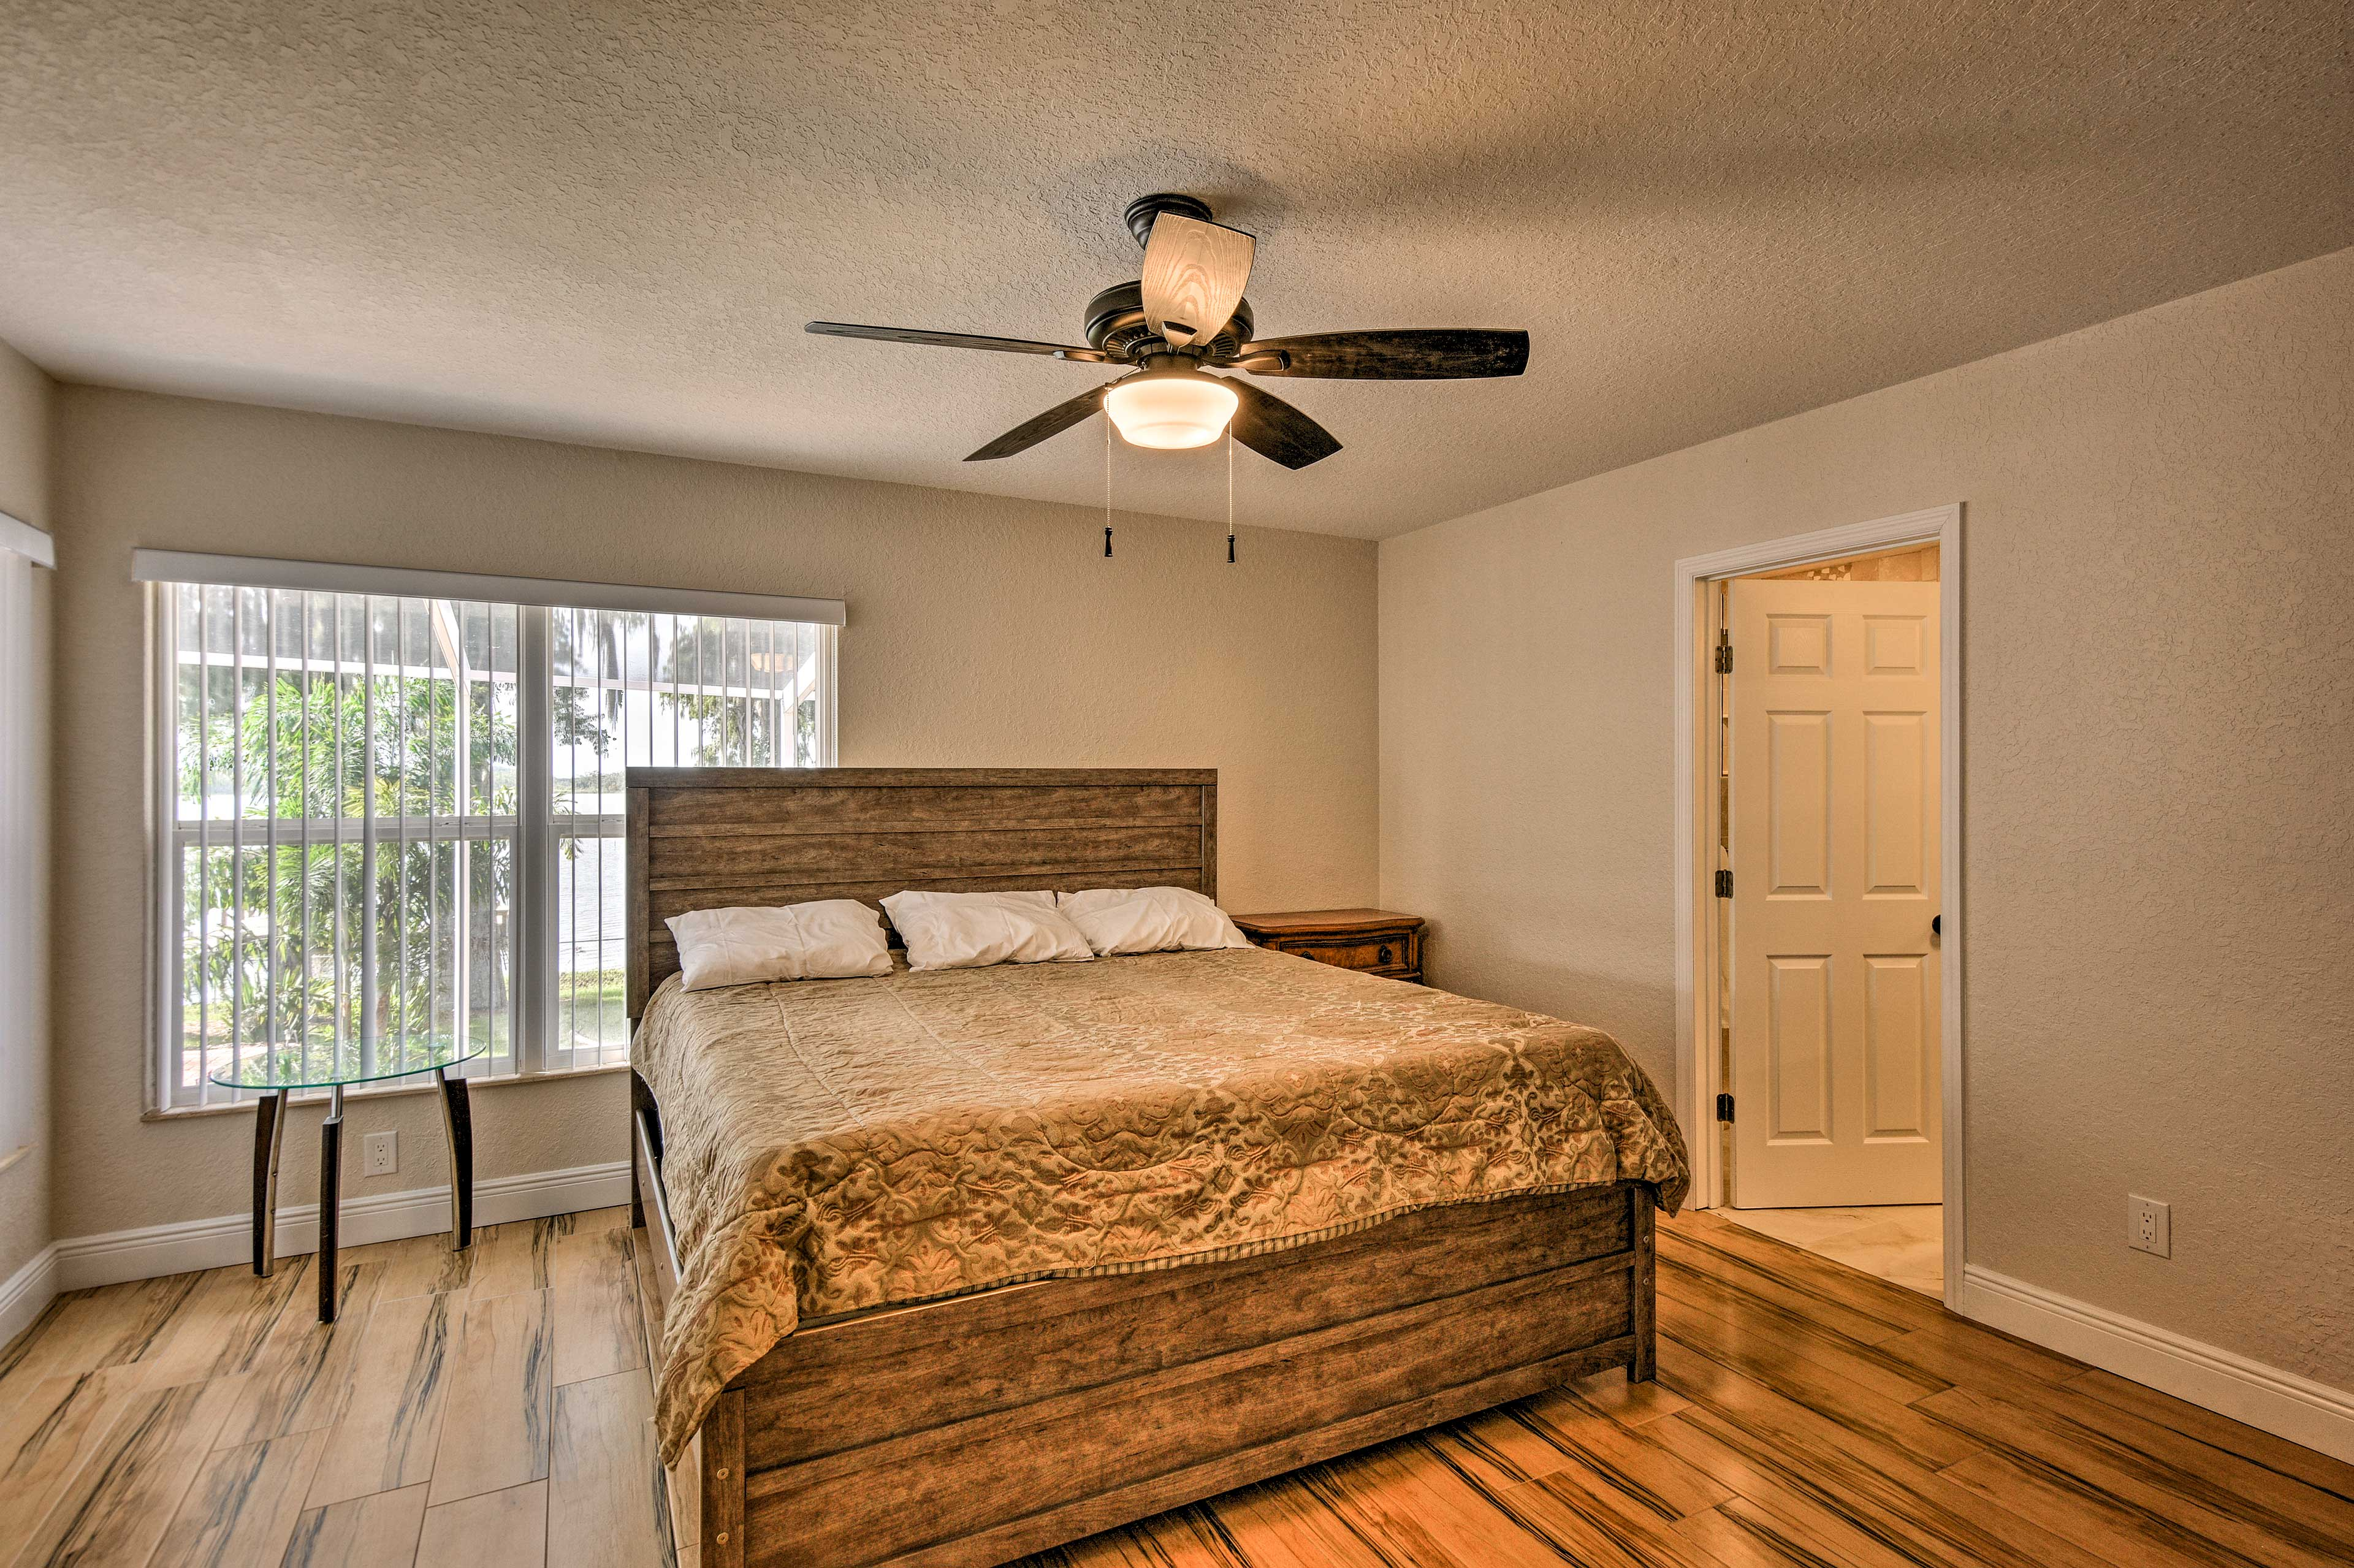 Get a good night of sleep in this king master bedroom!